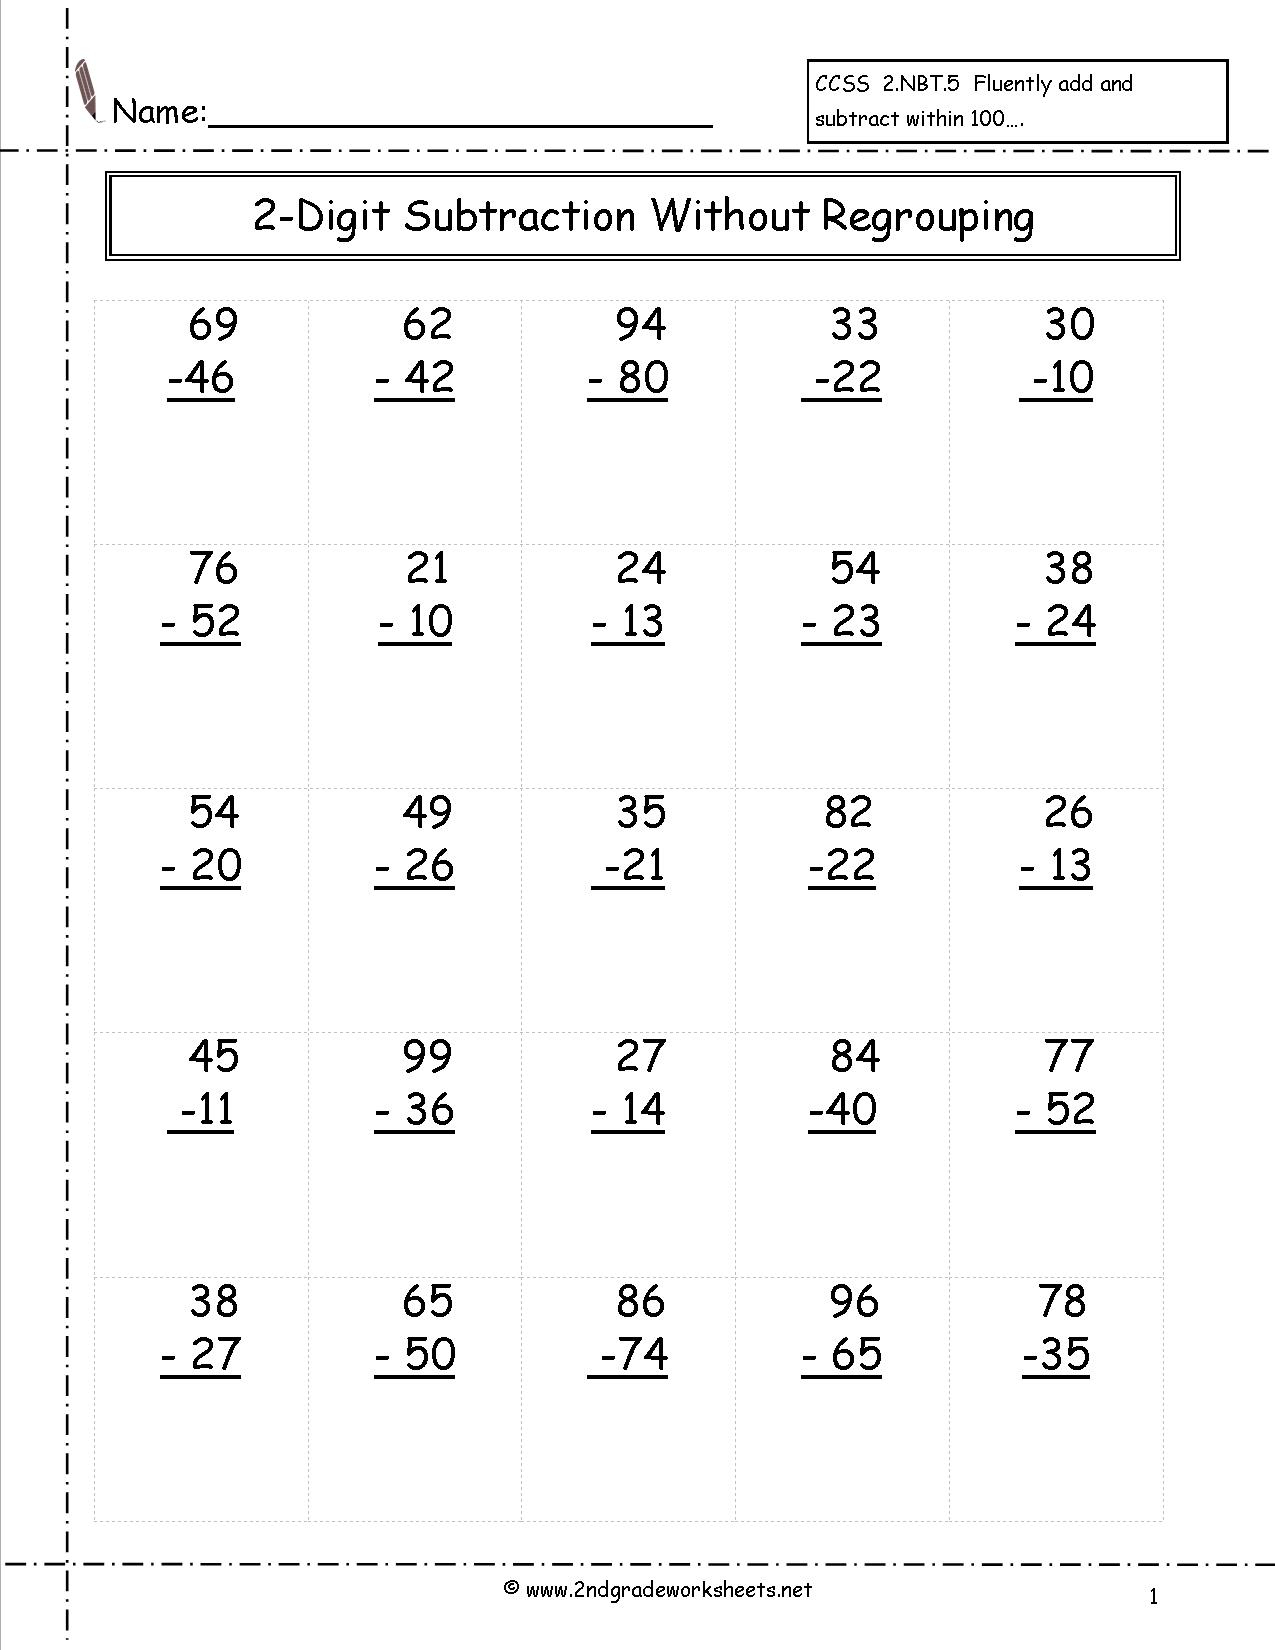 Two Digit Subtraction Worksheets - Free Printable Subtraction | Free Printable Subtraction Worksheets